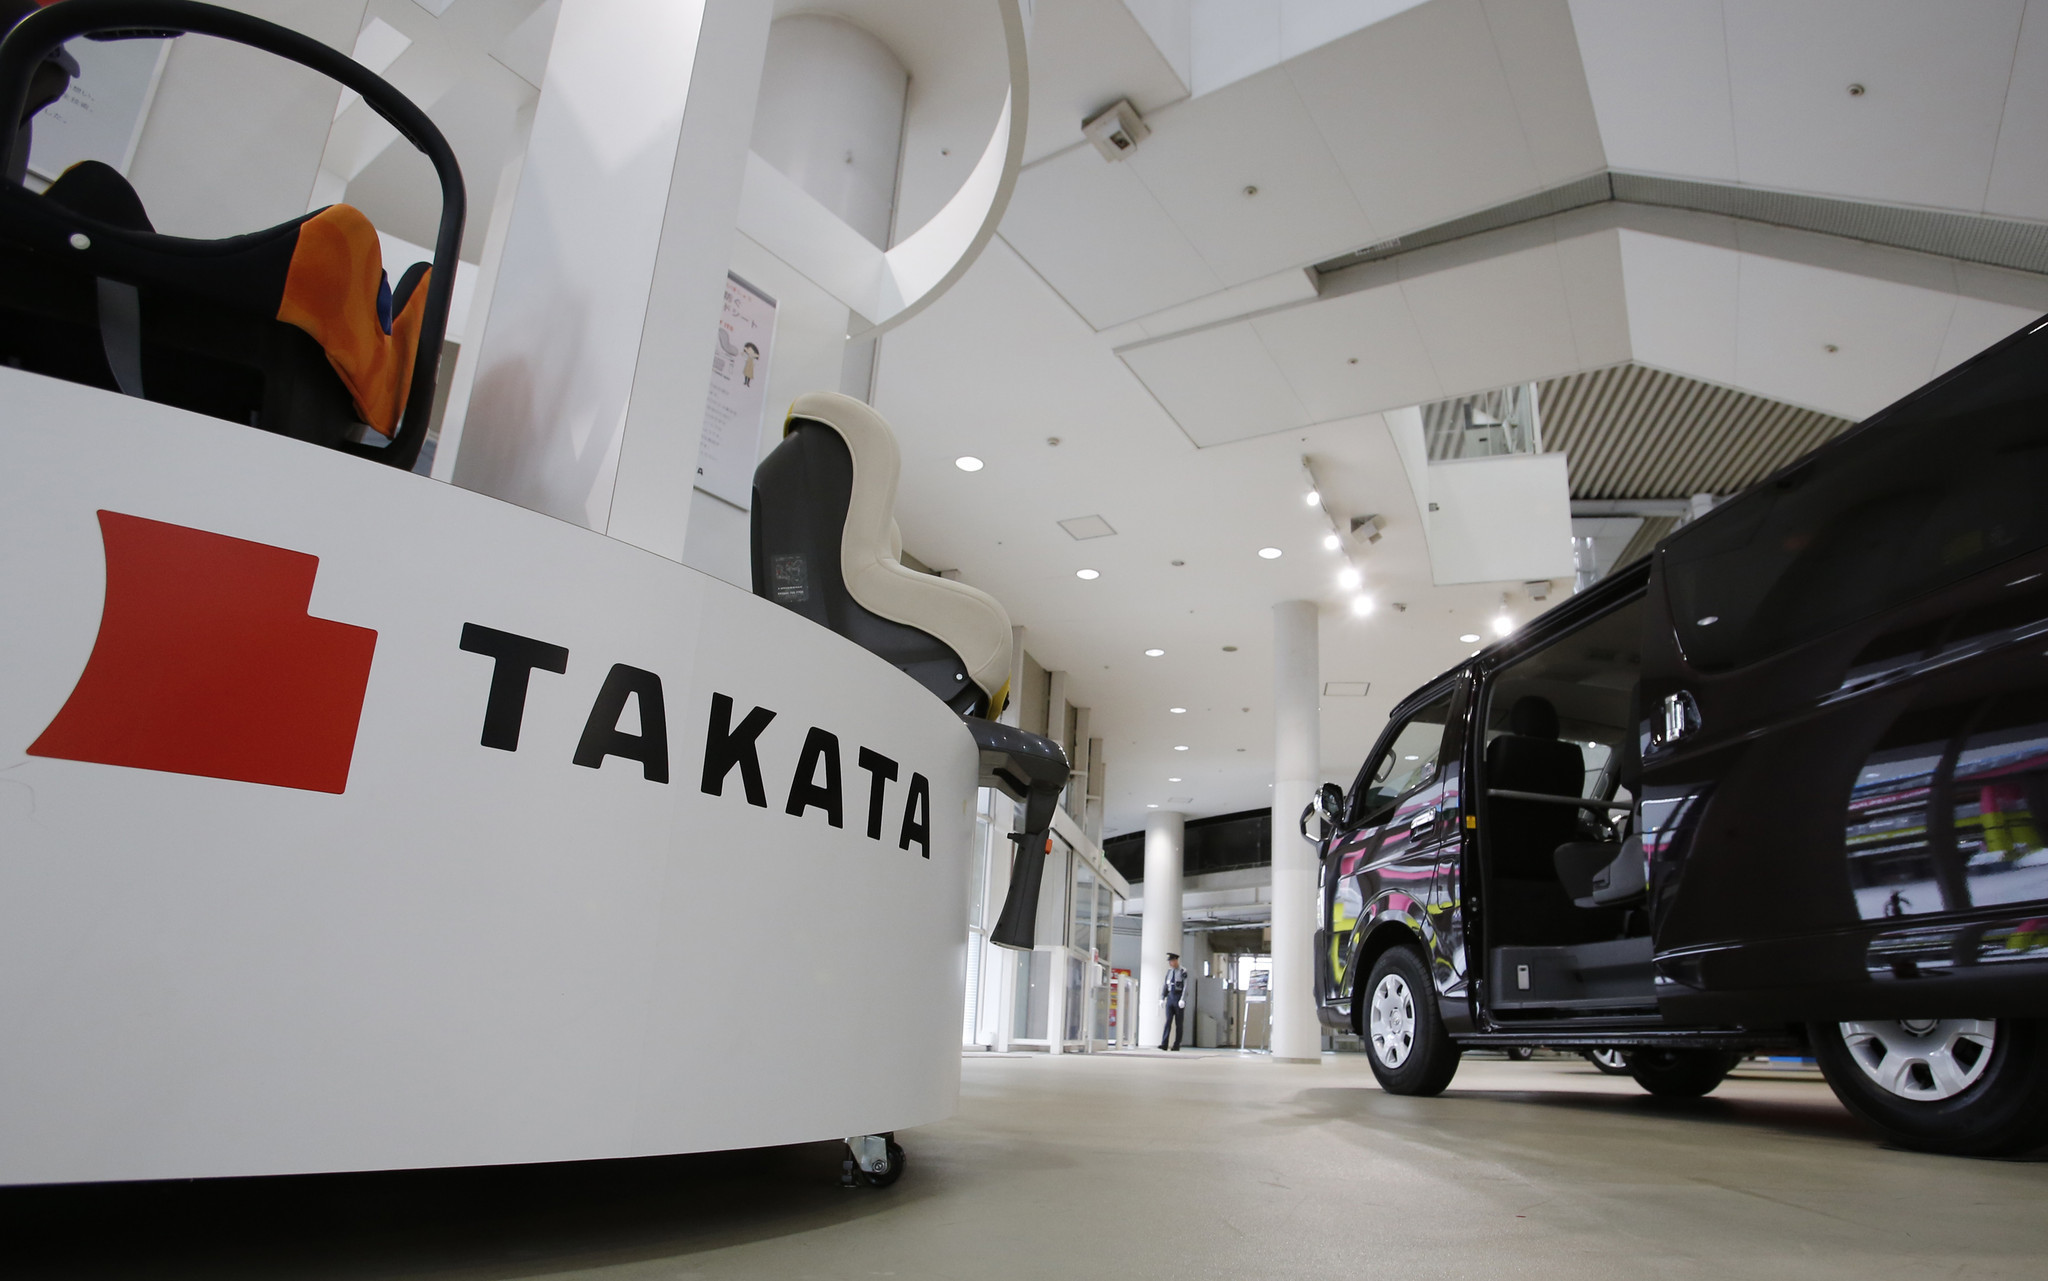 Takata files for bankruptcy following air bag recalls and lawsuits